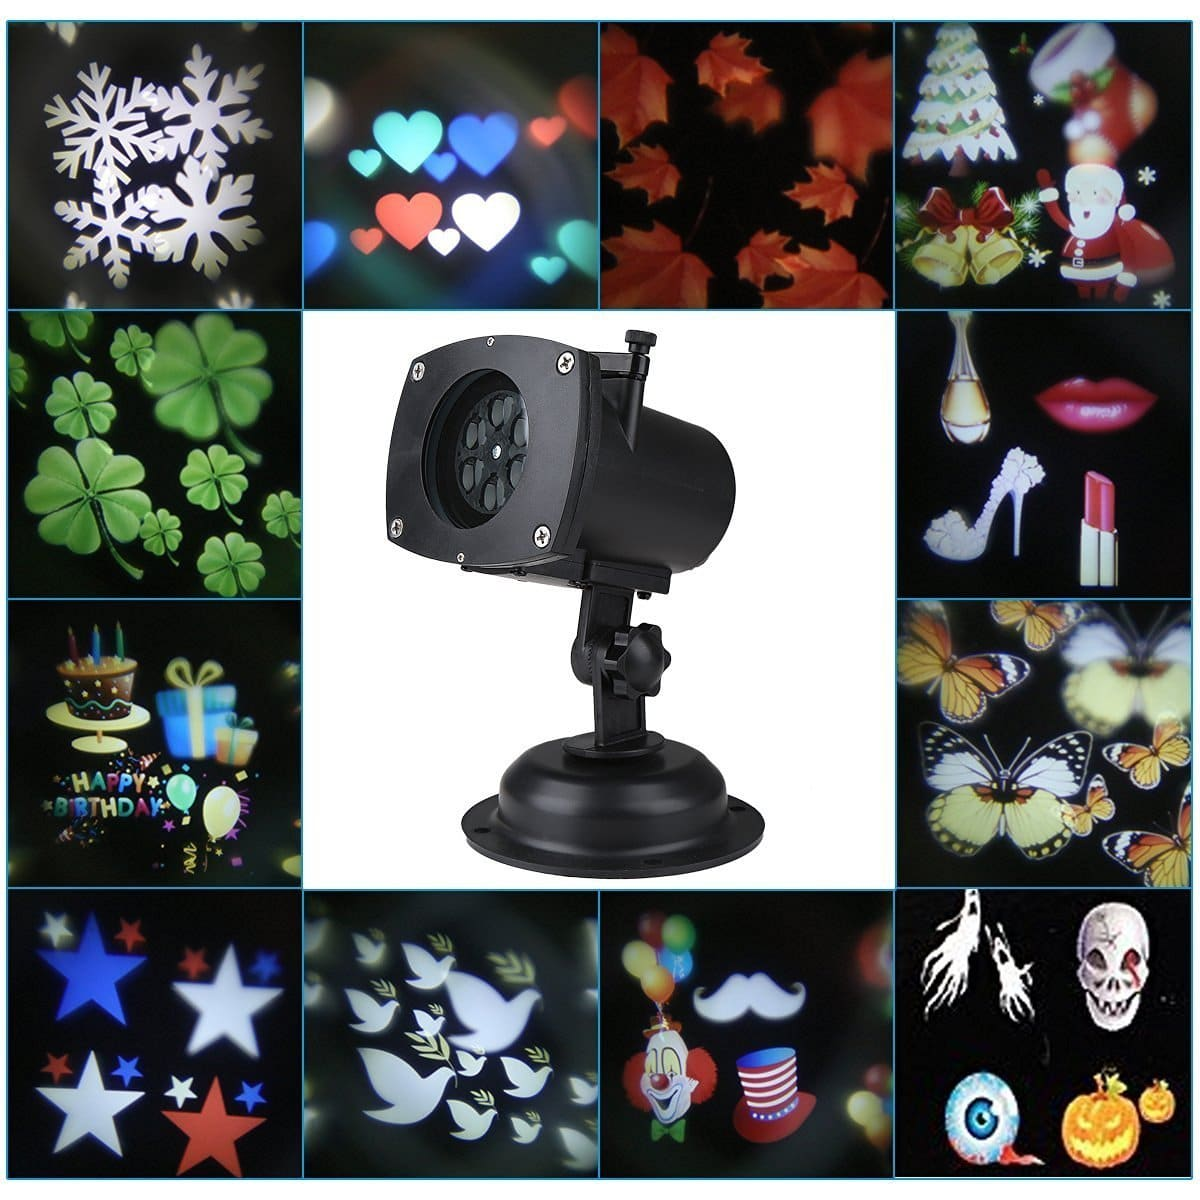 waterproof projection spotlight from party in holiday light garden projector item led wedding lighting christmas outdoor landscape snowflake decoration lights